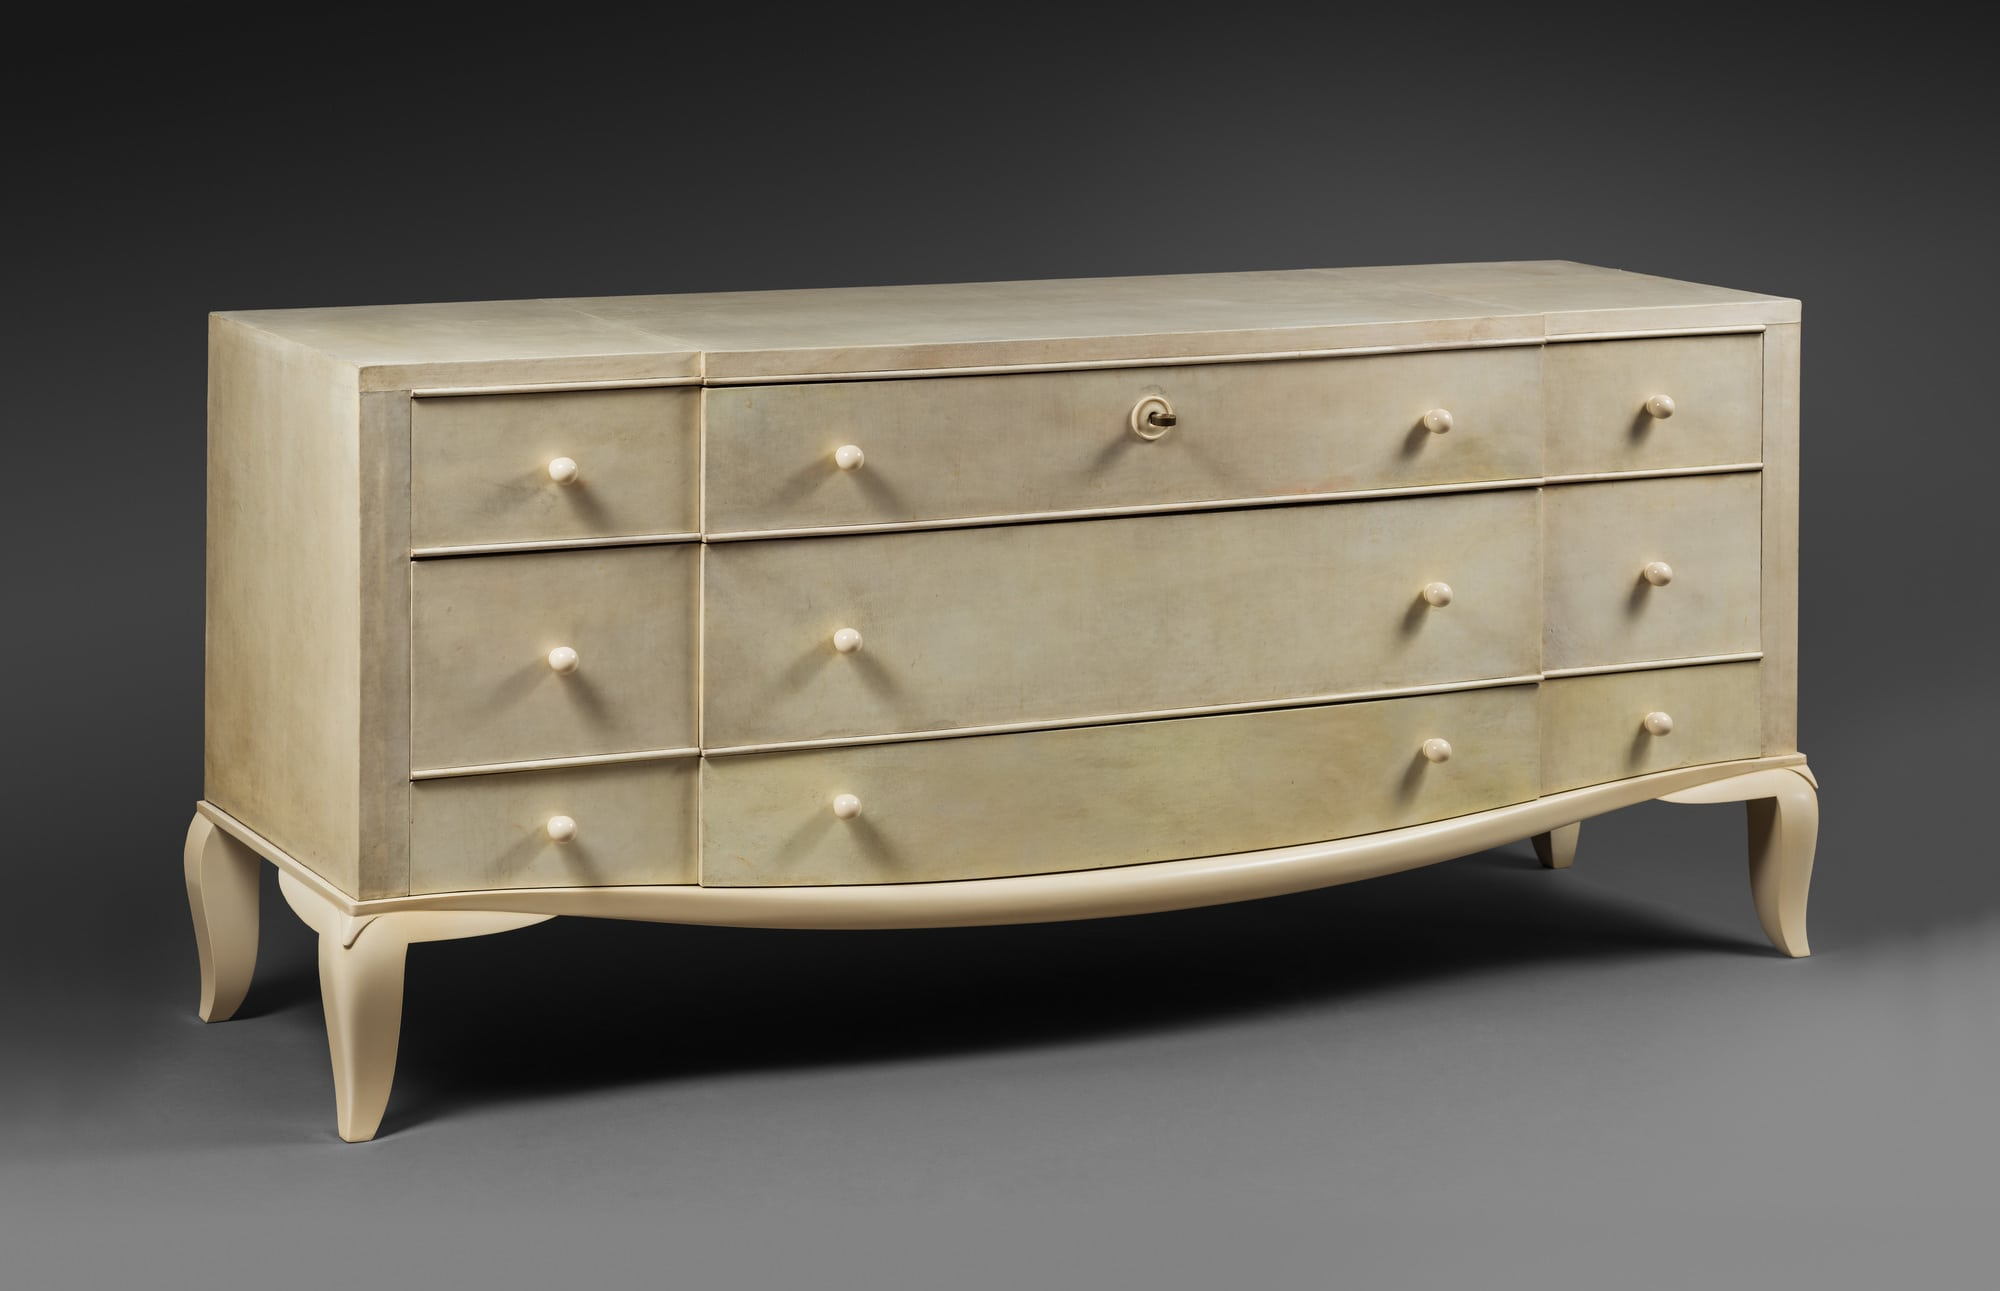 Rare 'pantalonniere' chest of drawers, vue 02